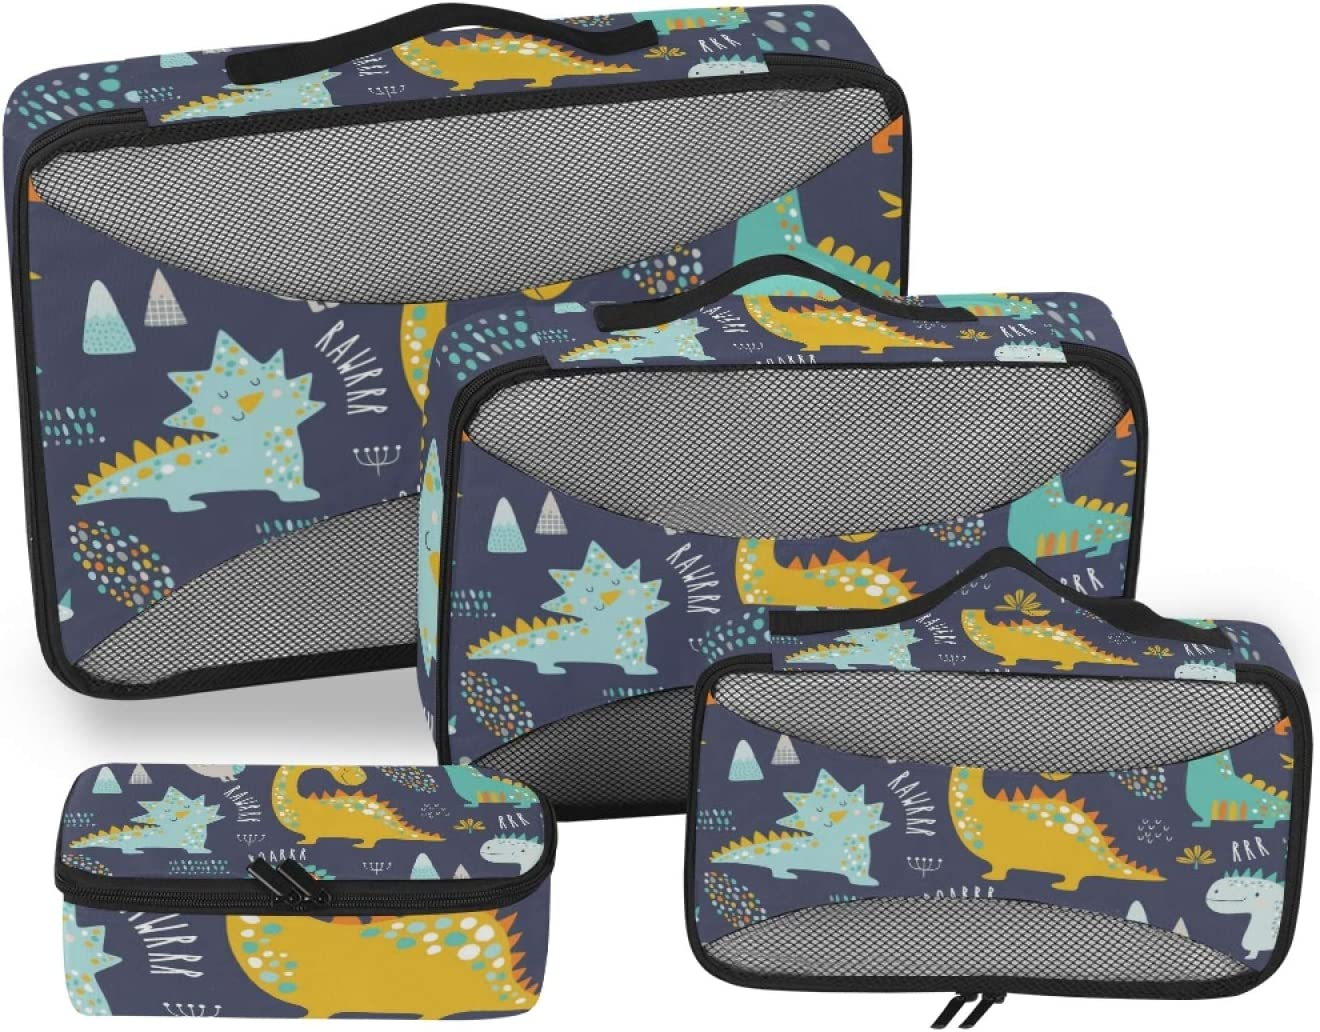 Earphone and Electronic Product Data Cable Storage Bag Hxuedan Colorful Dinosaur The Data Cable Storage Bag is A Portable and Independent Design SuitableVFor Travelers to Place The Data Cable